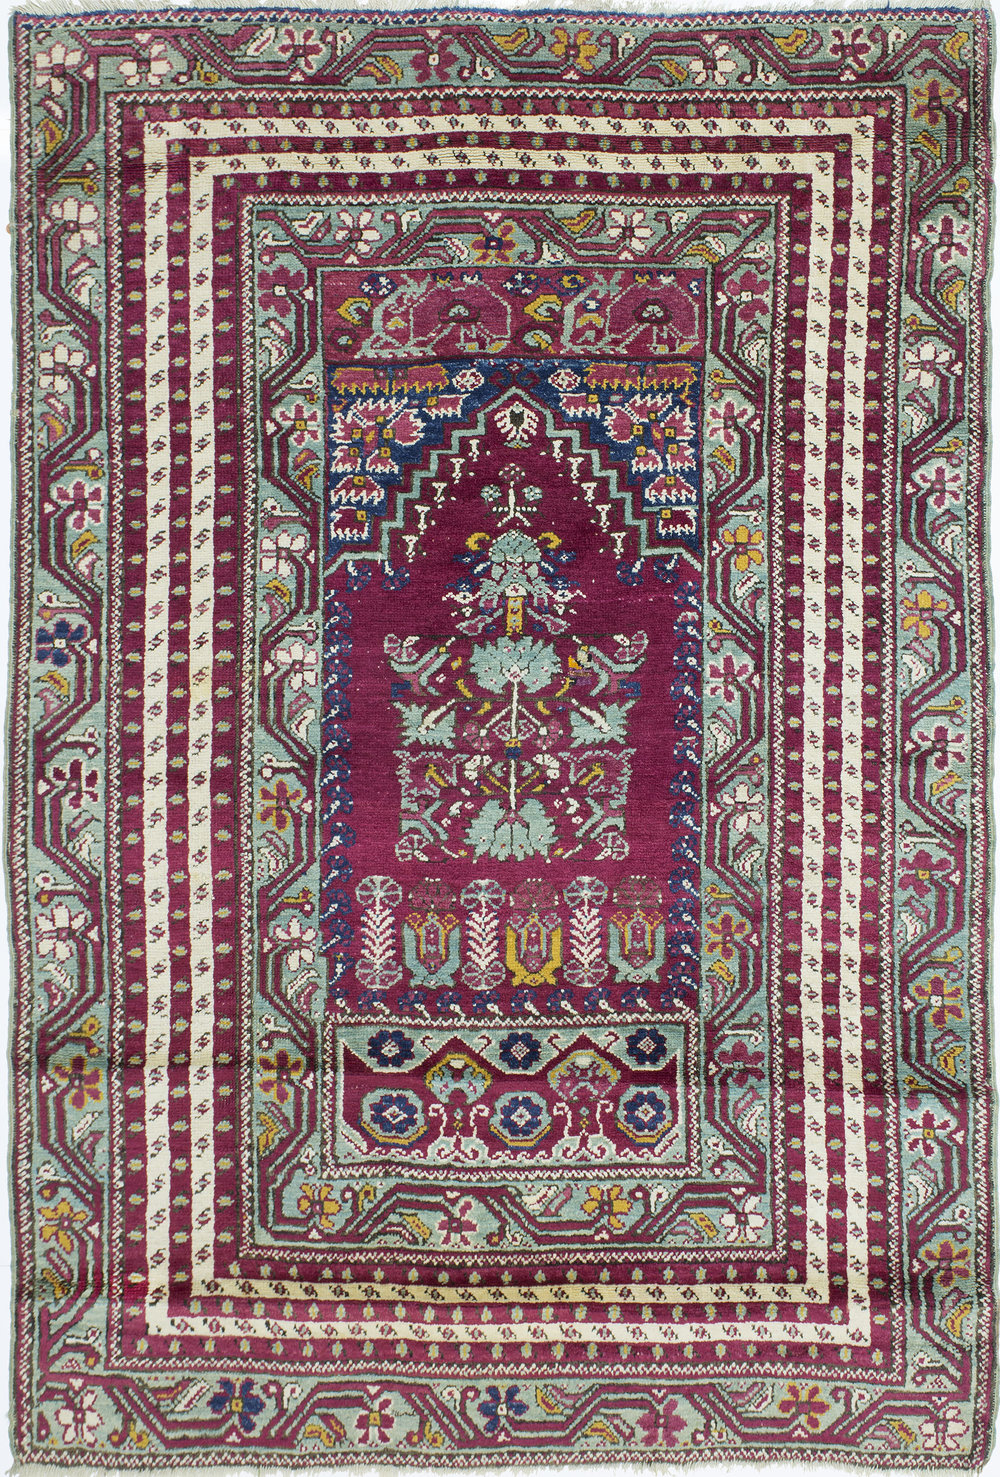 "Kirsheir Prayer Rug 6' 4"" x 4' 3"""